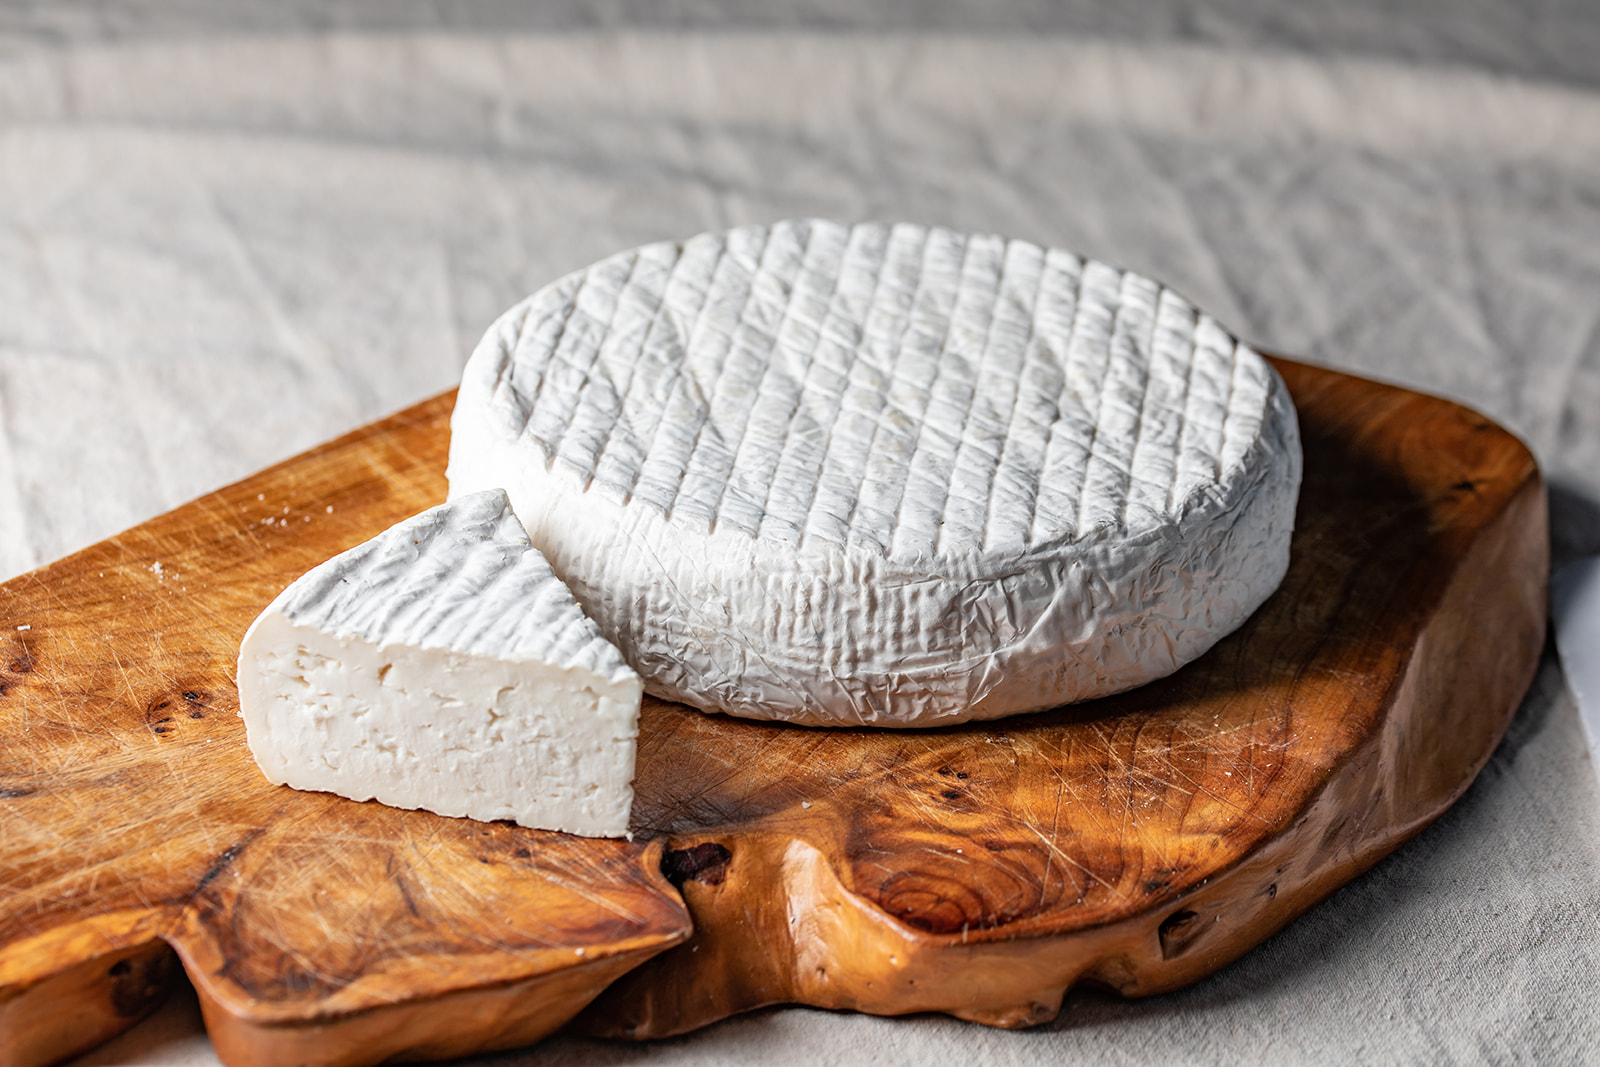 Brie-style Cheese made from Goat's Milk